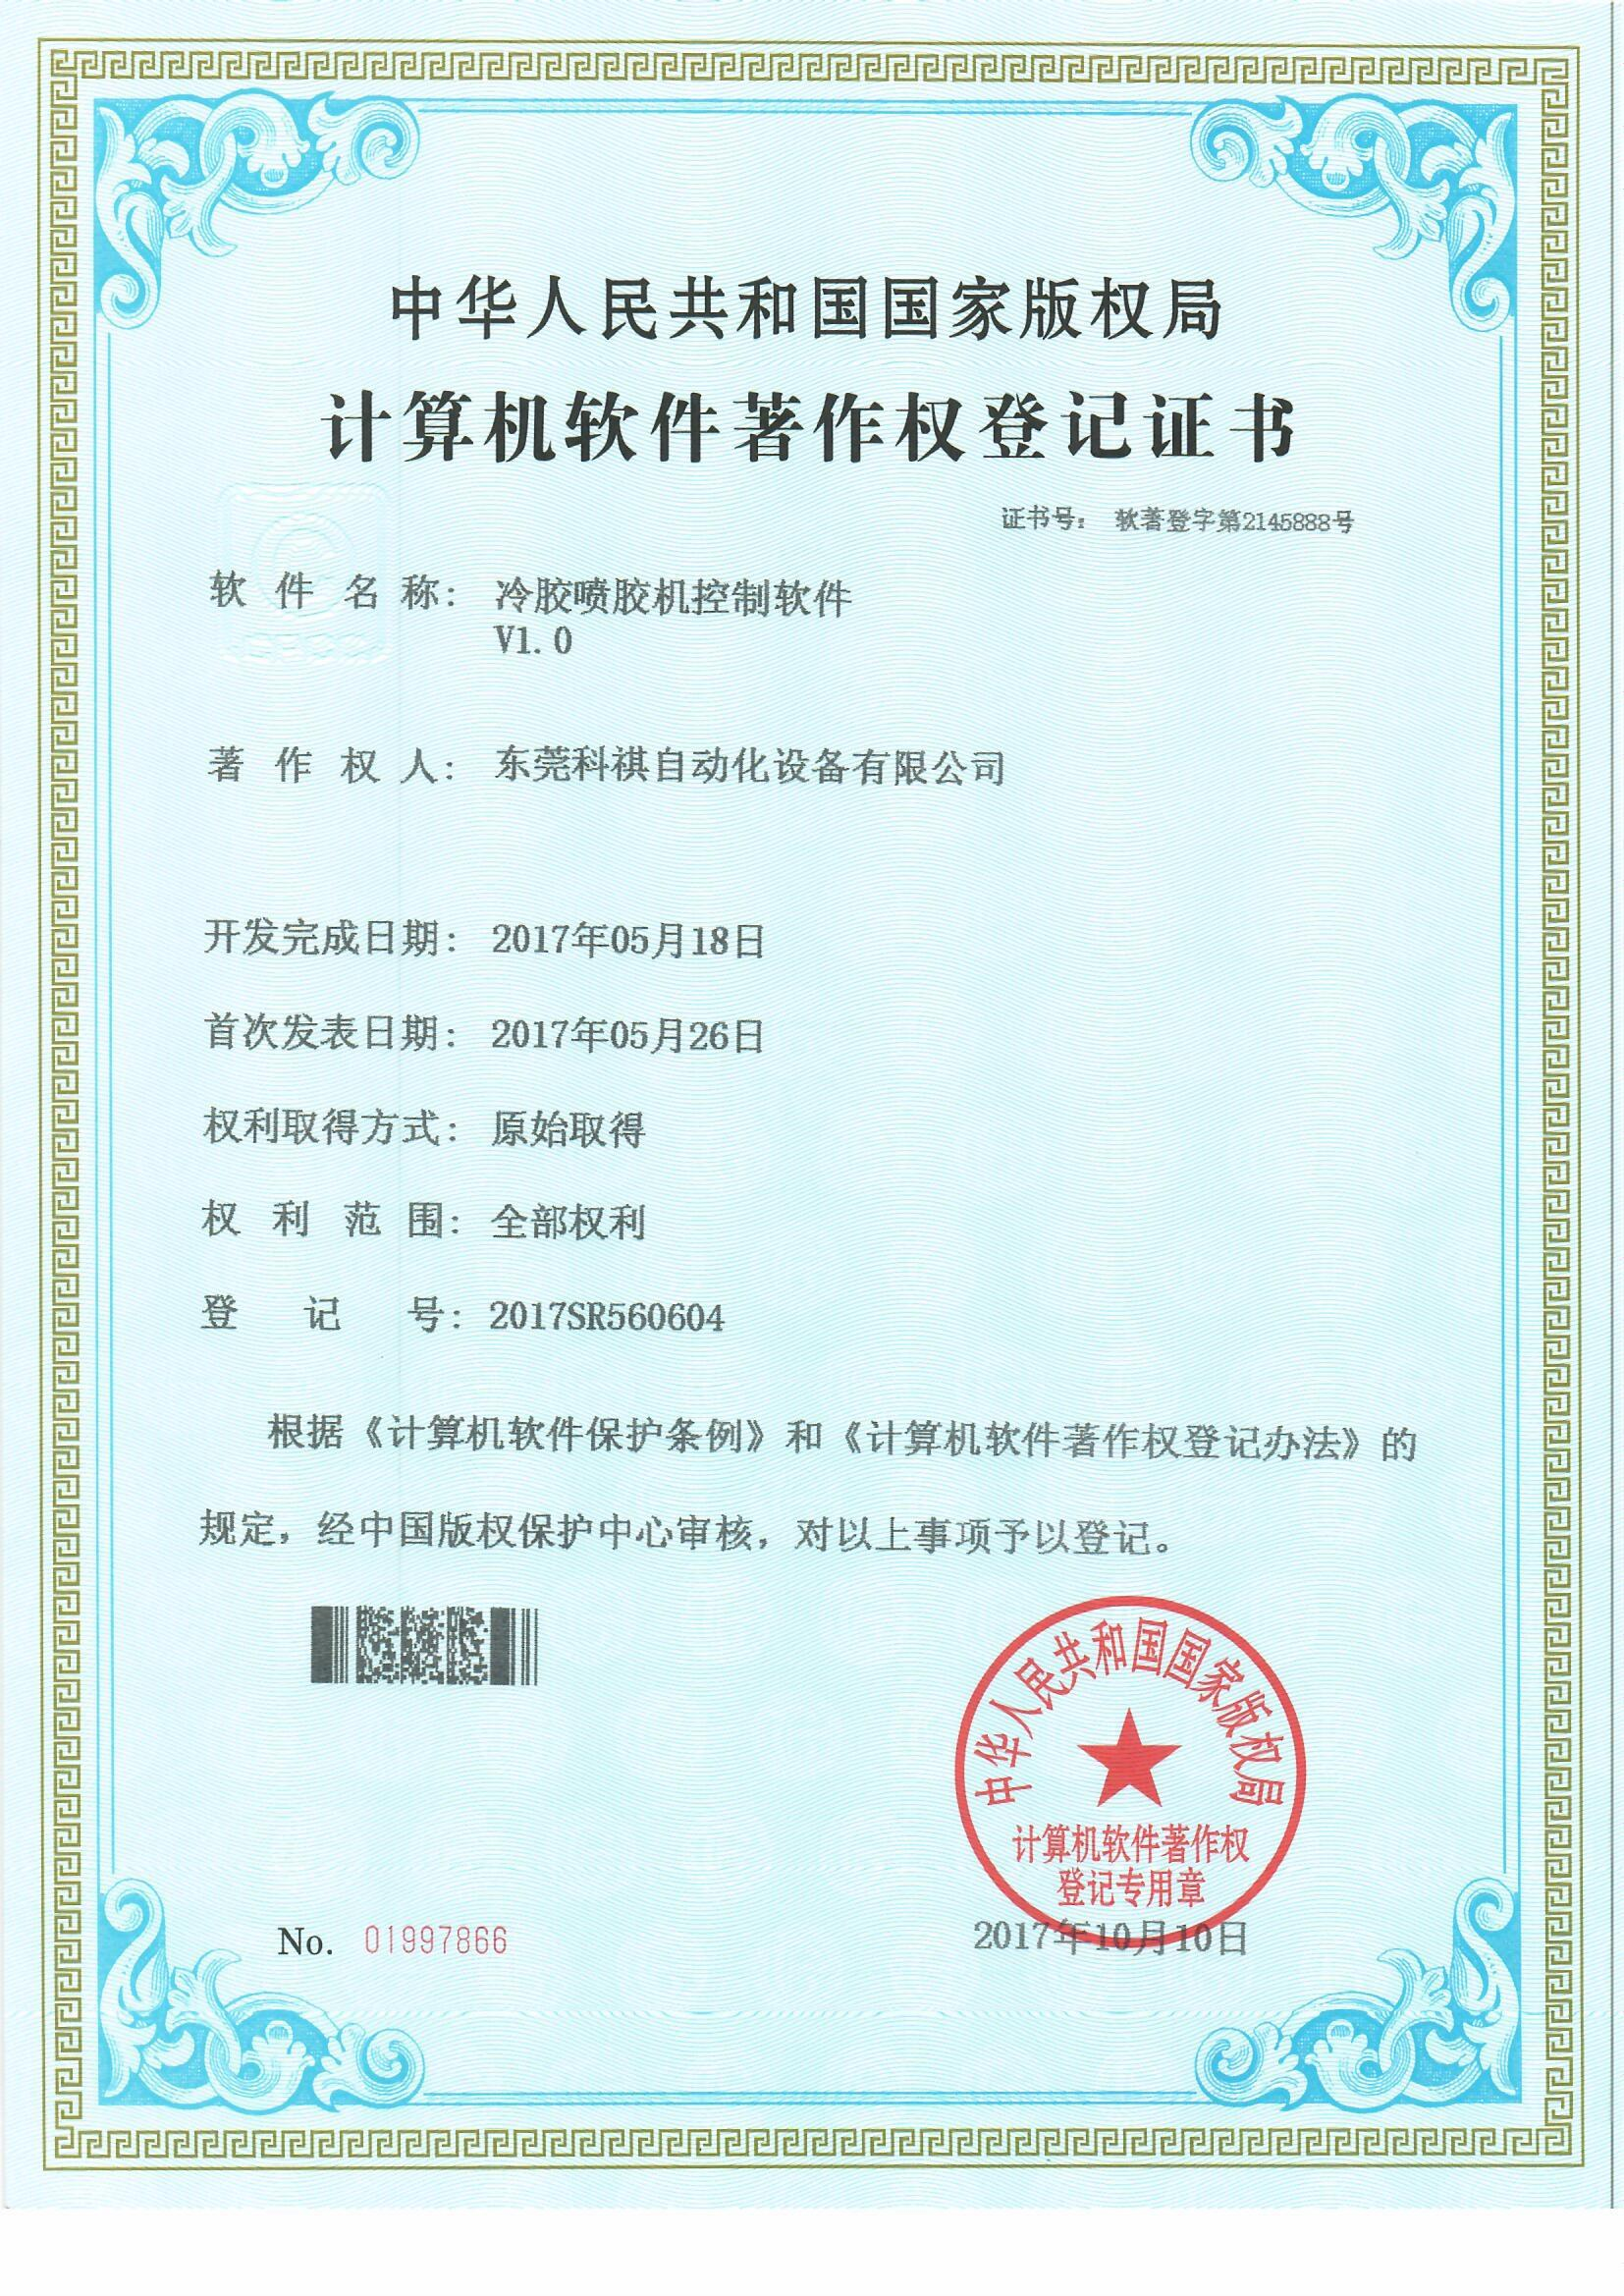 Cold glue spraying machine copyright certificate